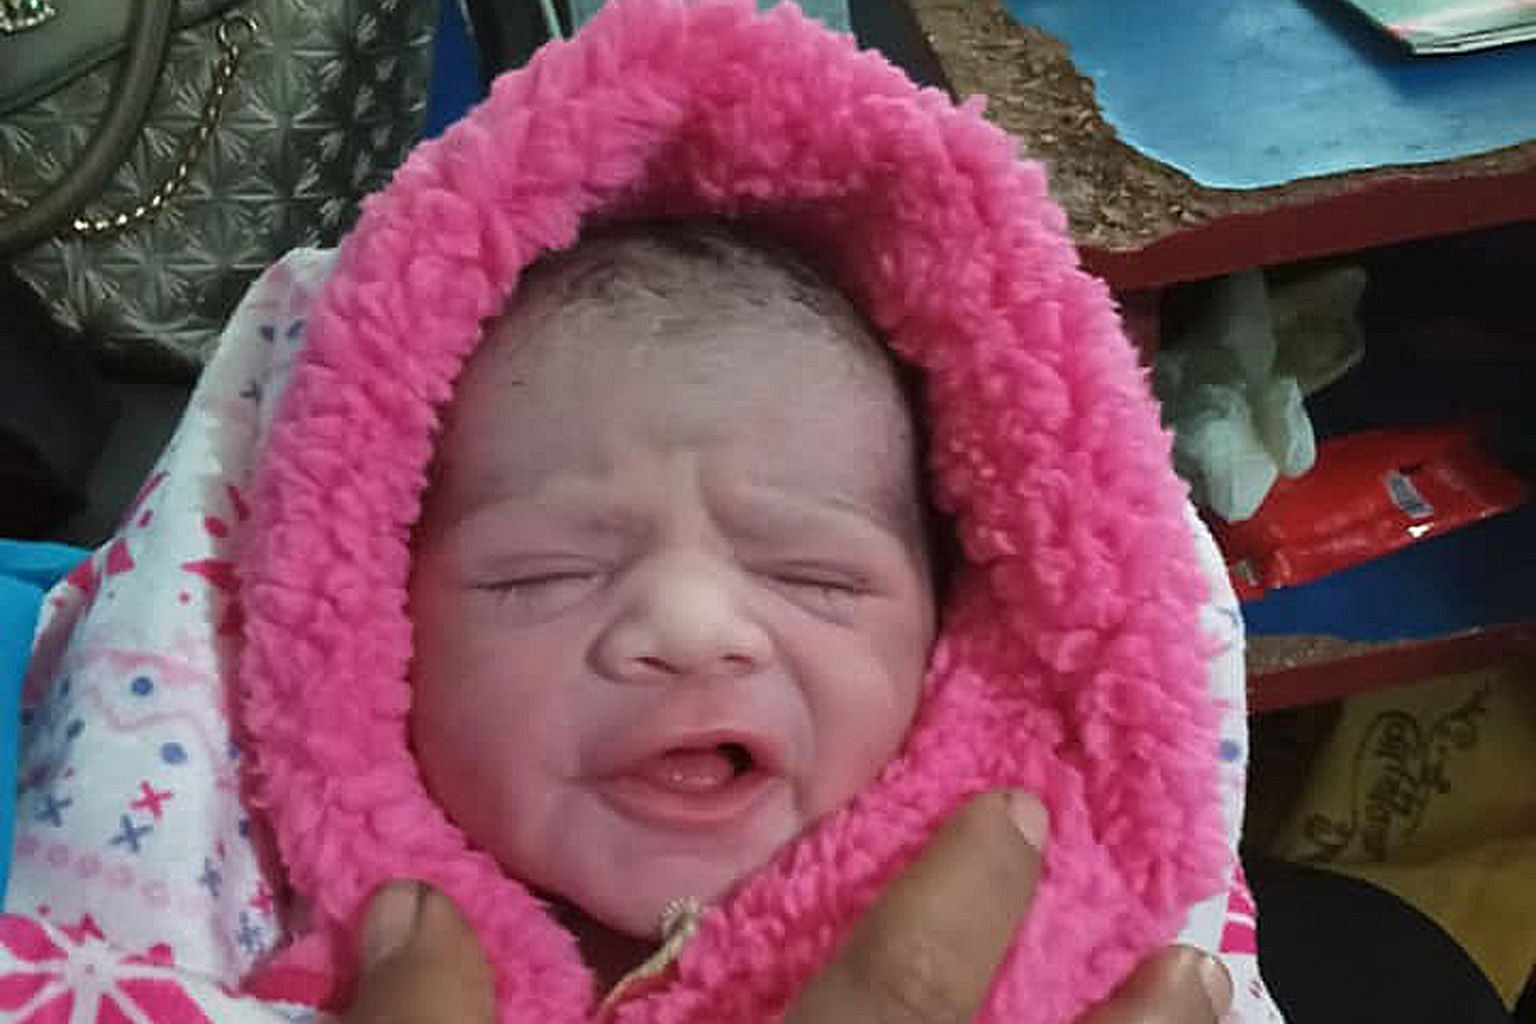 Ms Dipa Swaminathan, founder of social enterprise ItsRainingRaincoats, posted on Facebook a photo of the worker's newborn baby boy, who arrived on Monday afternoon. She said the mother and child are doing well in Bangladesh.